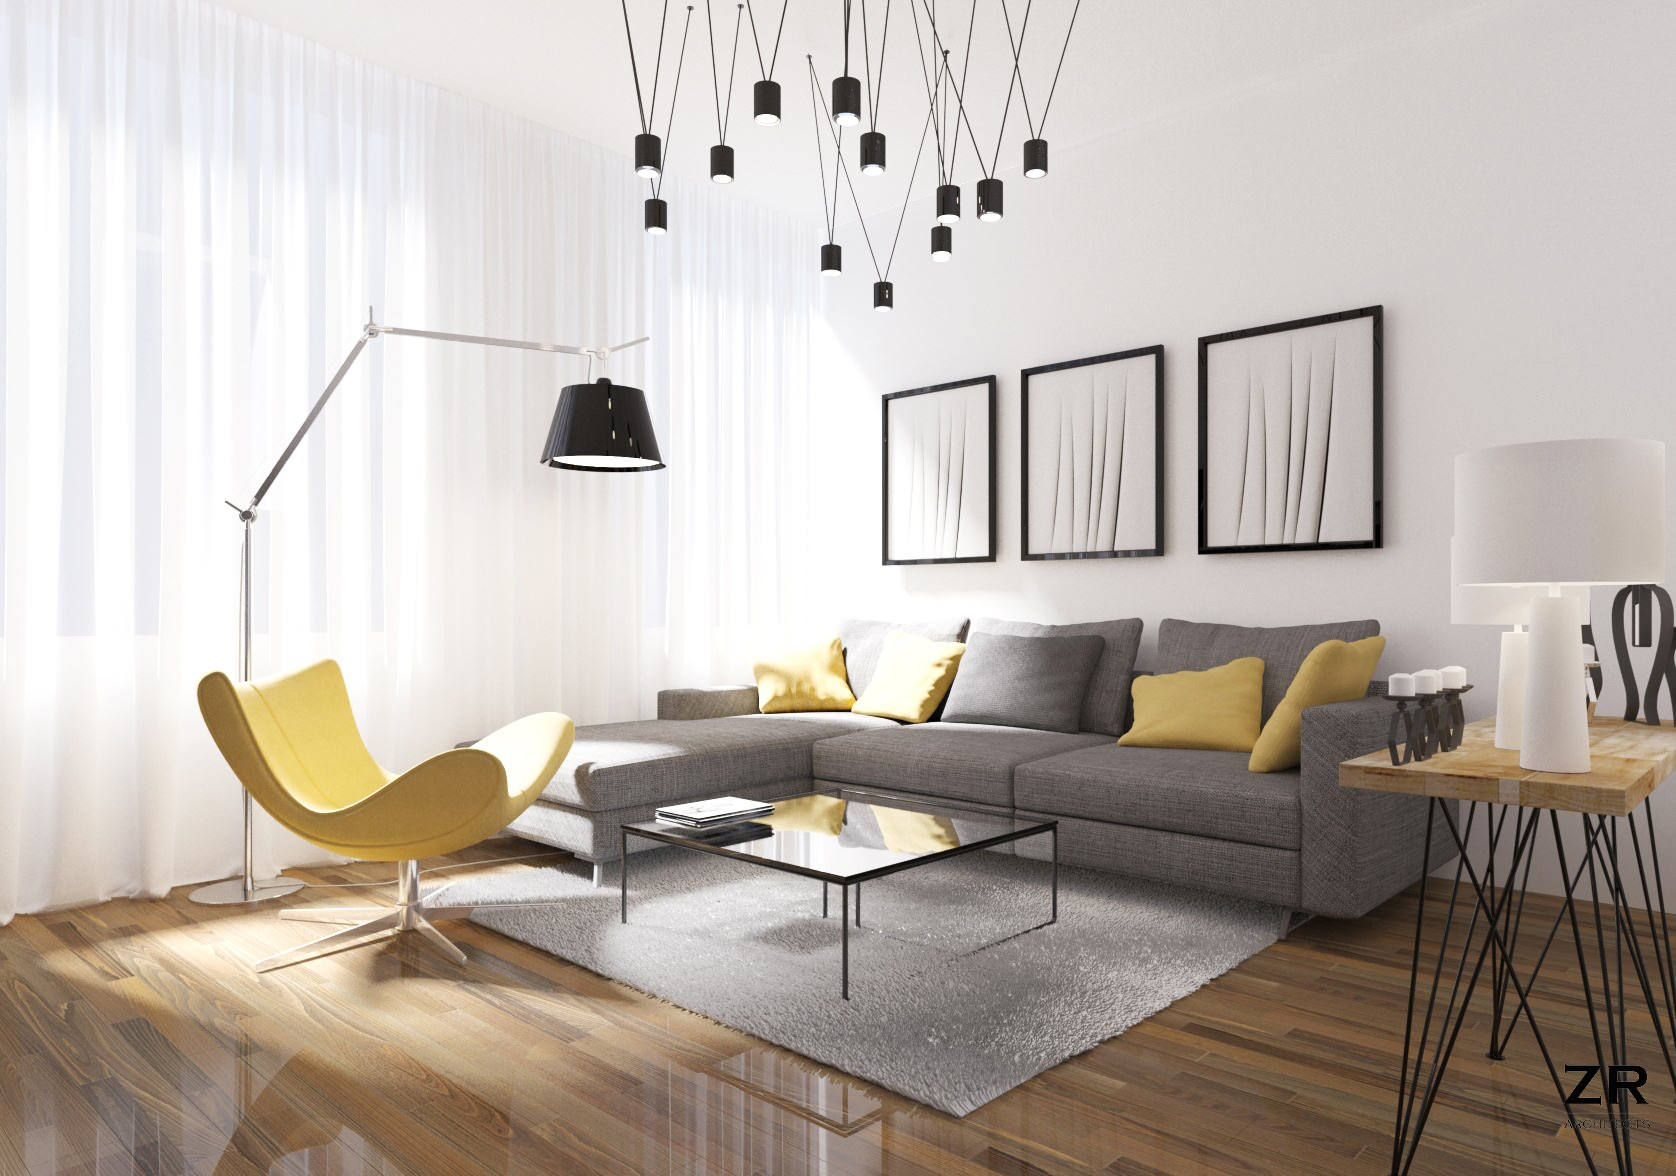 75 Beautiful Small Modern Living Room Pictures Ideas December 2020 Houzz